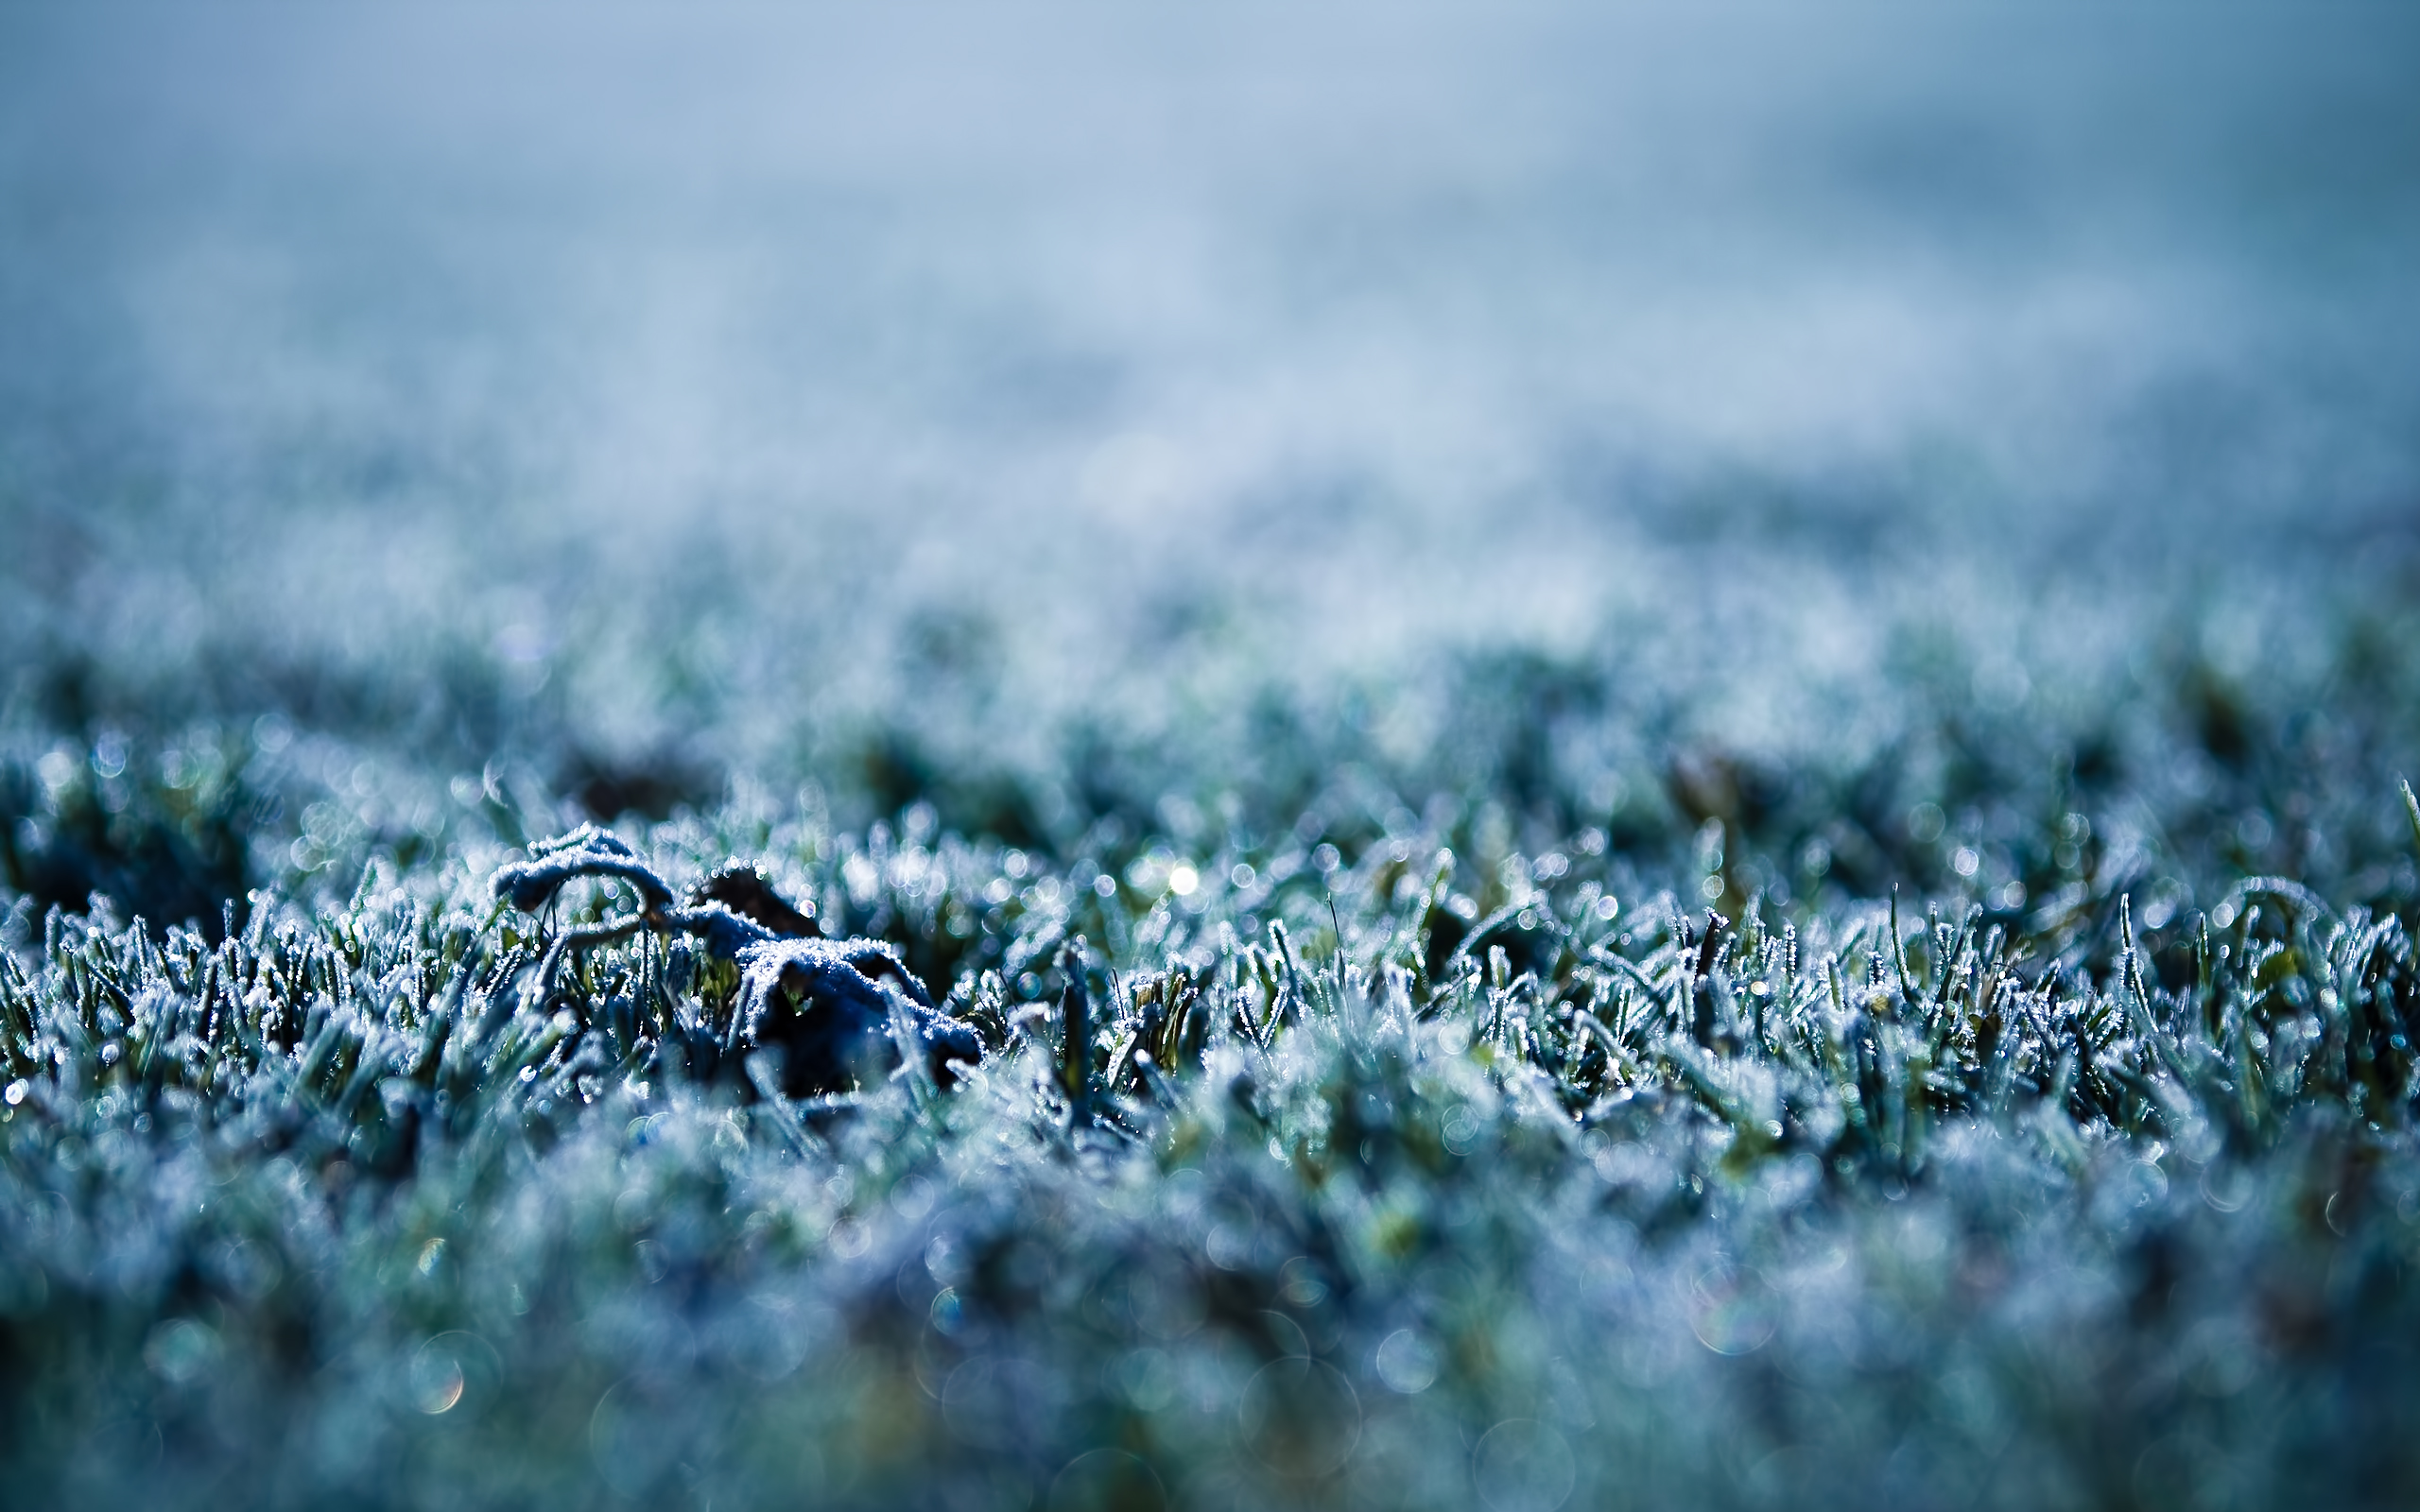 Frost Wallpaper 1 by pavel89l 2560x1600